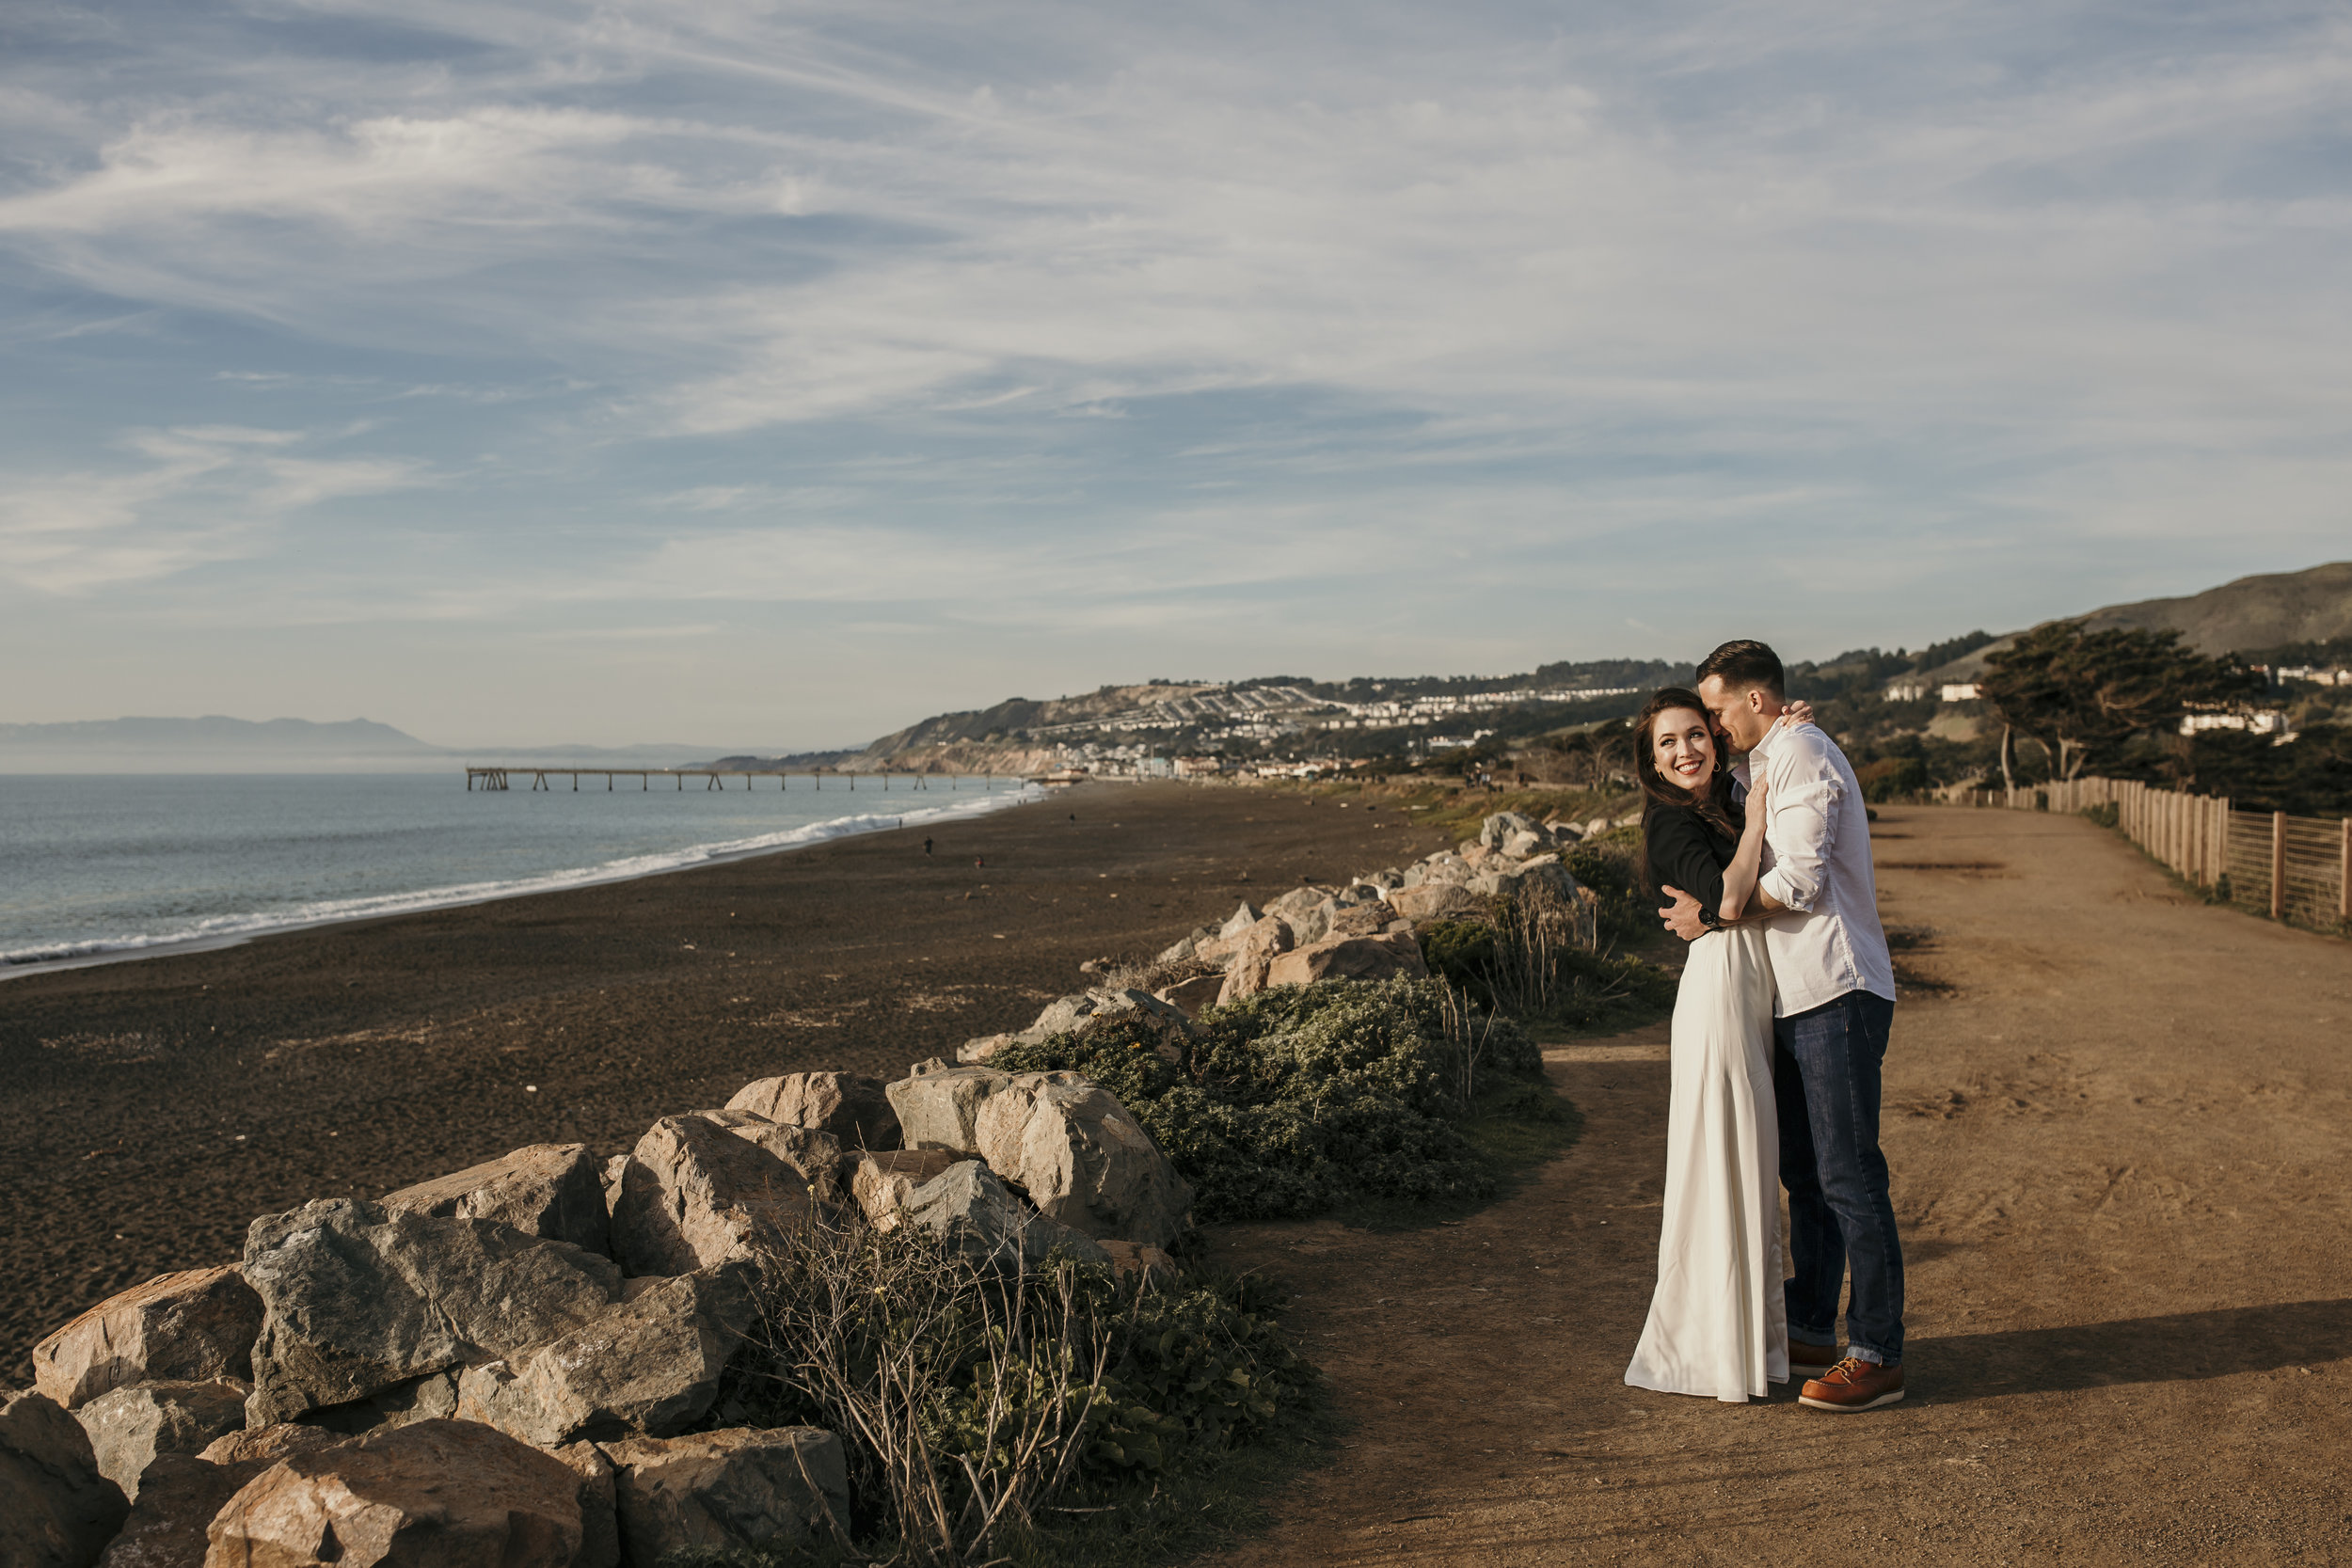 san francisco engagement + wedding photography by bre thurston | outside lifestyle photographer in the bay area | romantic engaged couple on the beach at sunset